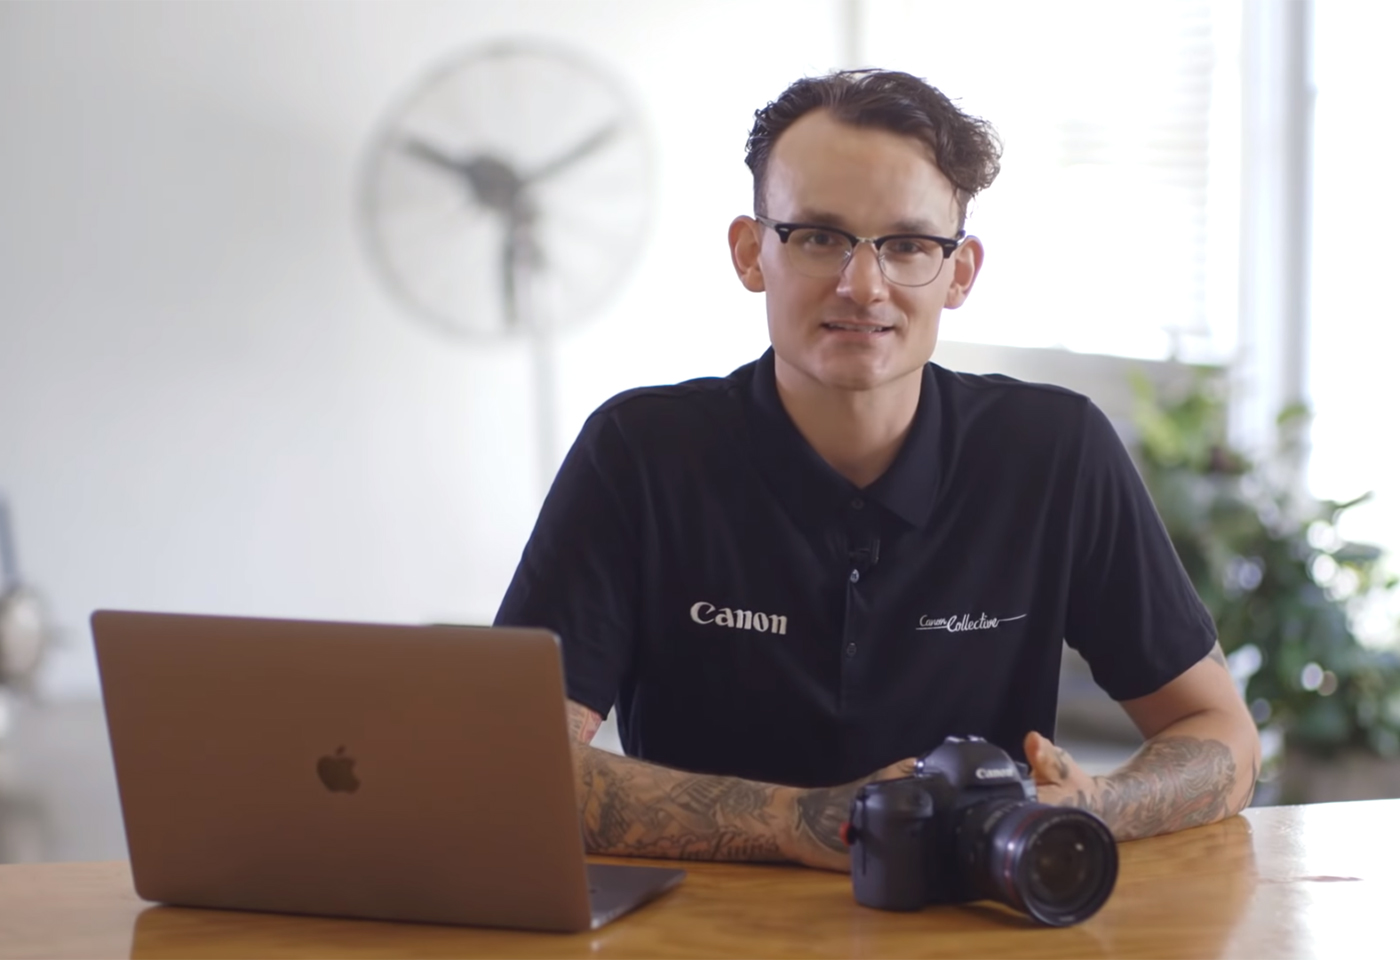 Setting Up Your Canon Camera for Video Shooting with Neal Walters